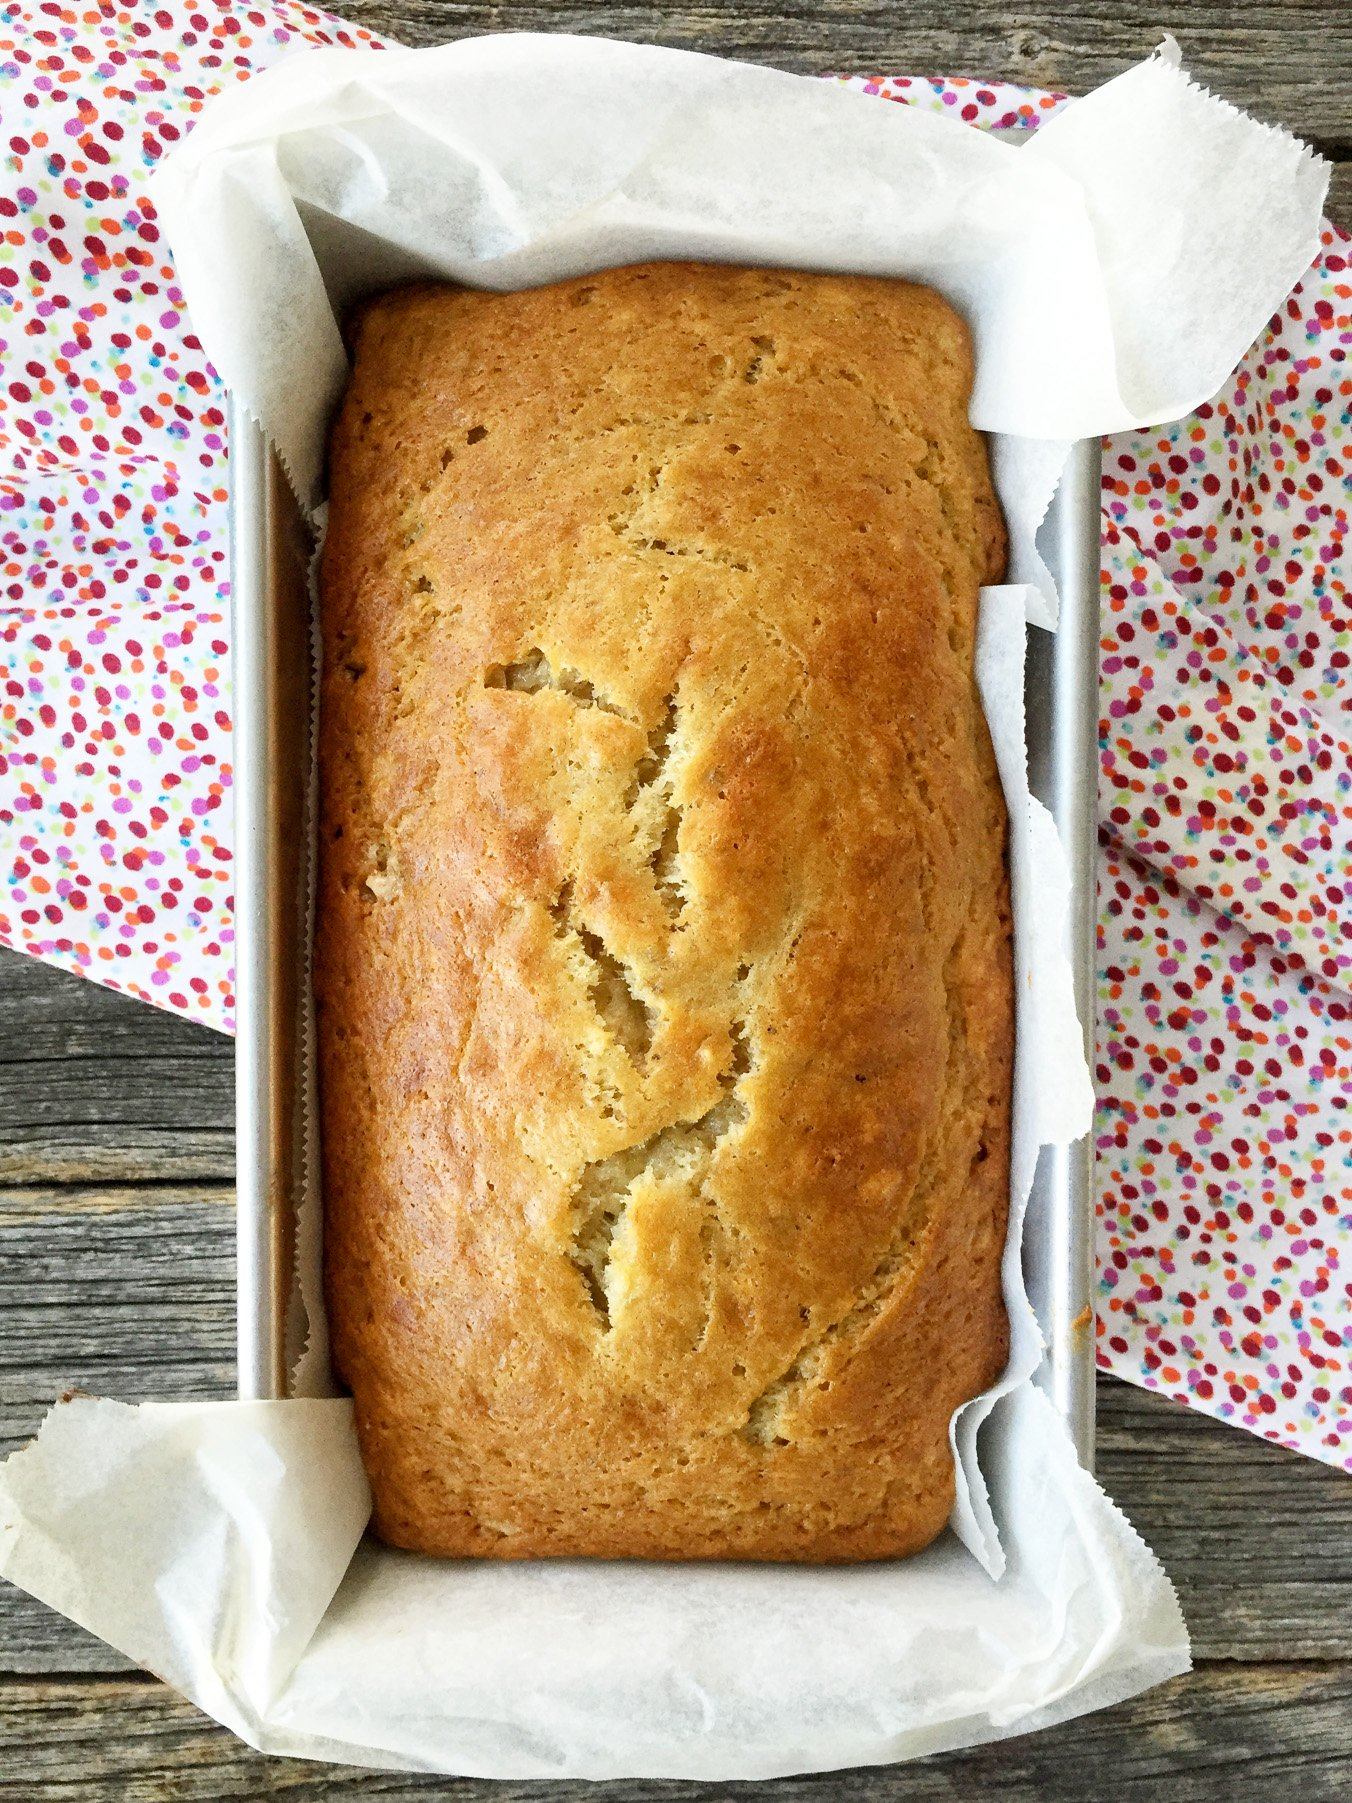 Tips and Recipes for Baking to Reduce Food Waste: Use up ripe bananas in banana bread.